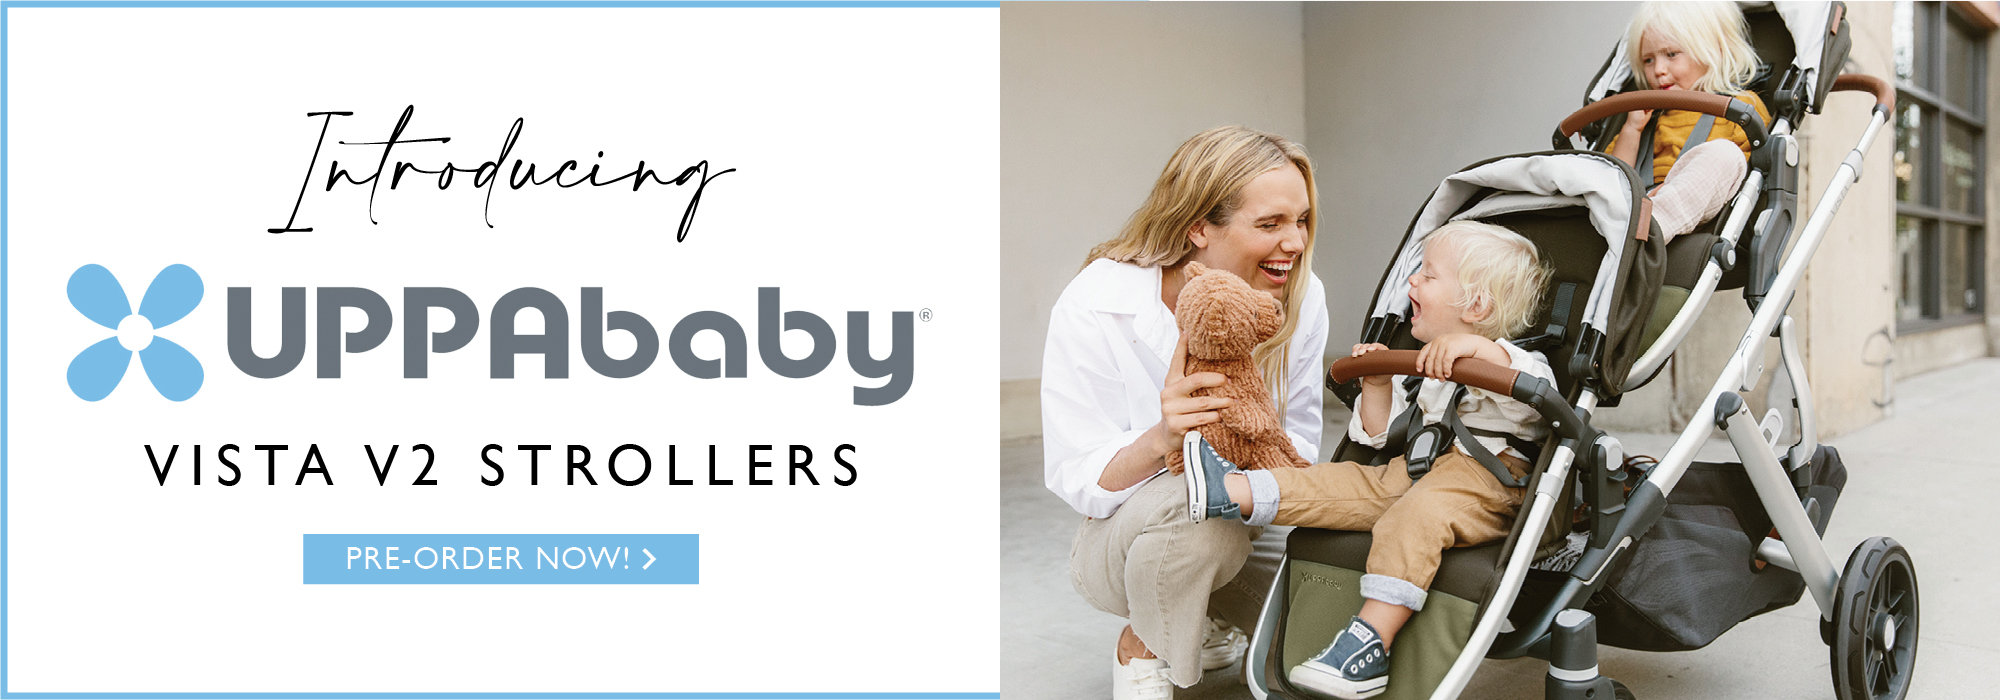 UPPAbaby Vista 2019 Clearout - 15% off Strollers & RumbleSeats